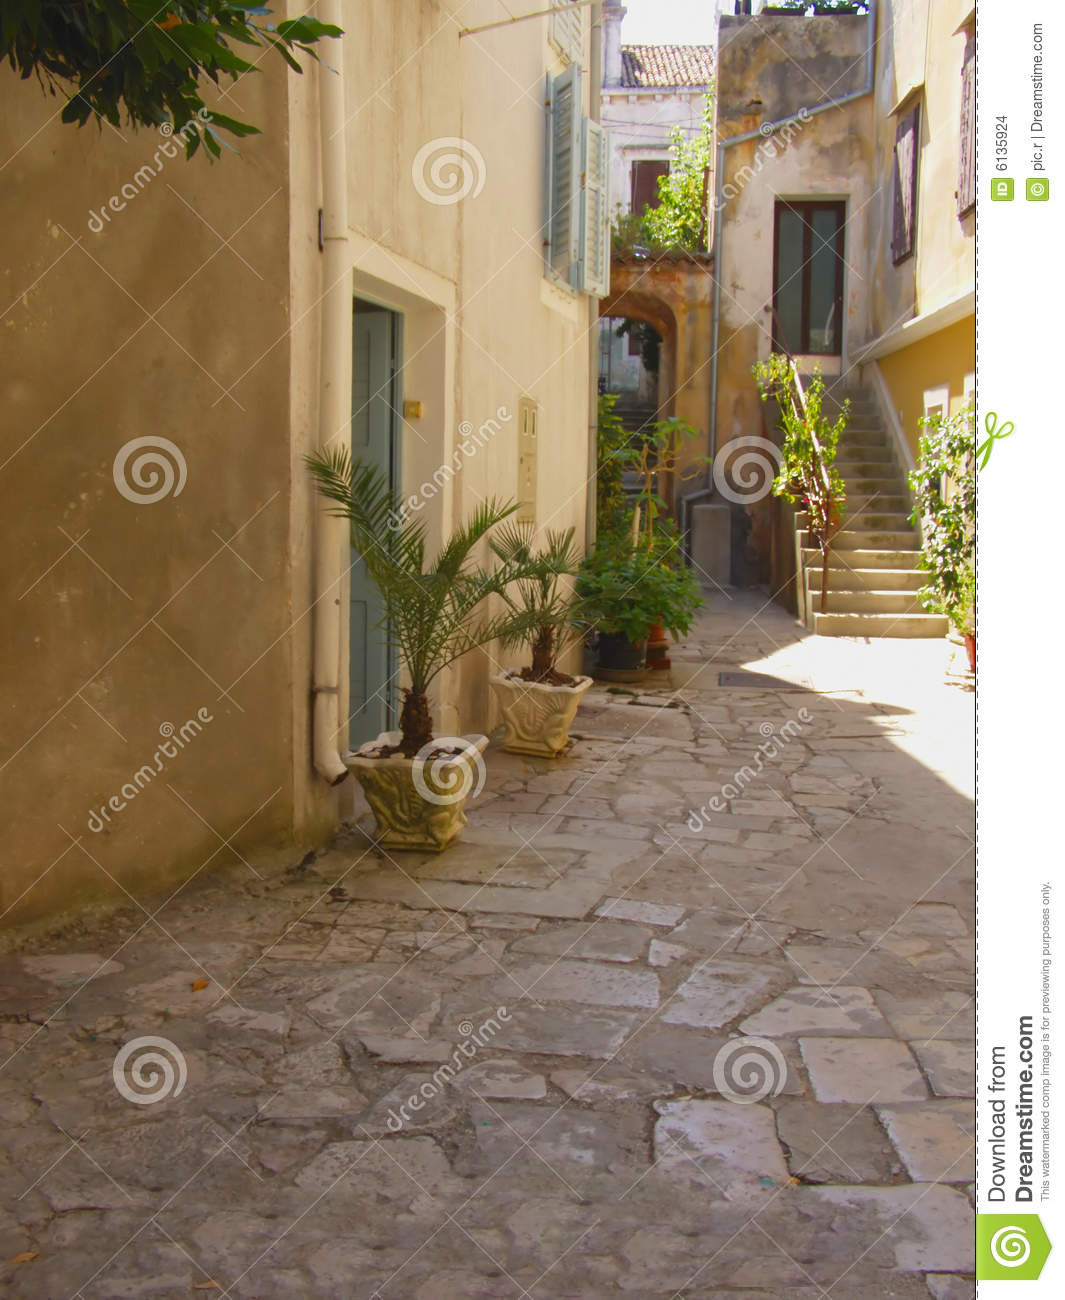 Mediterranean Courtyard Stock Photo Image Of History